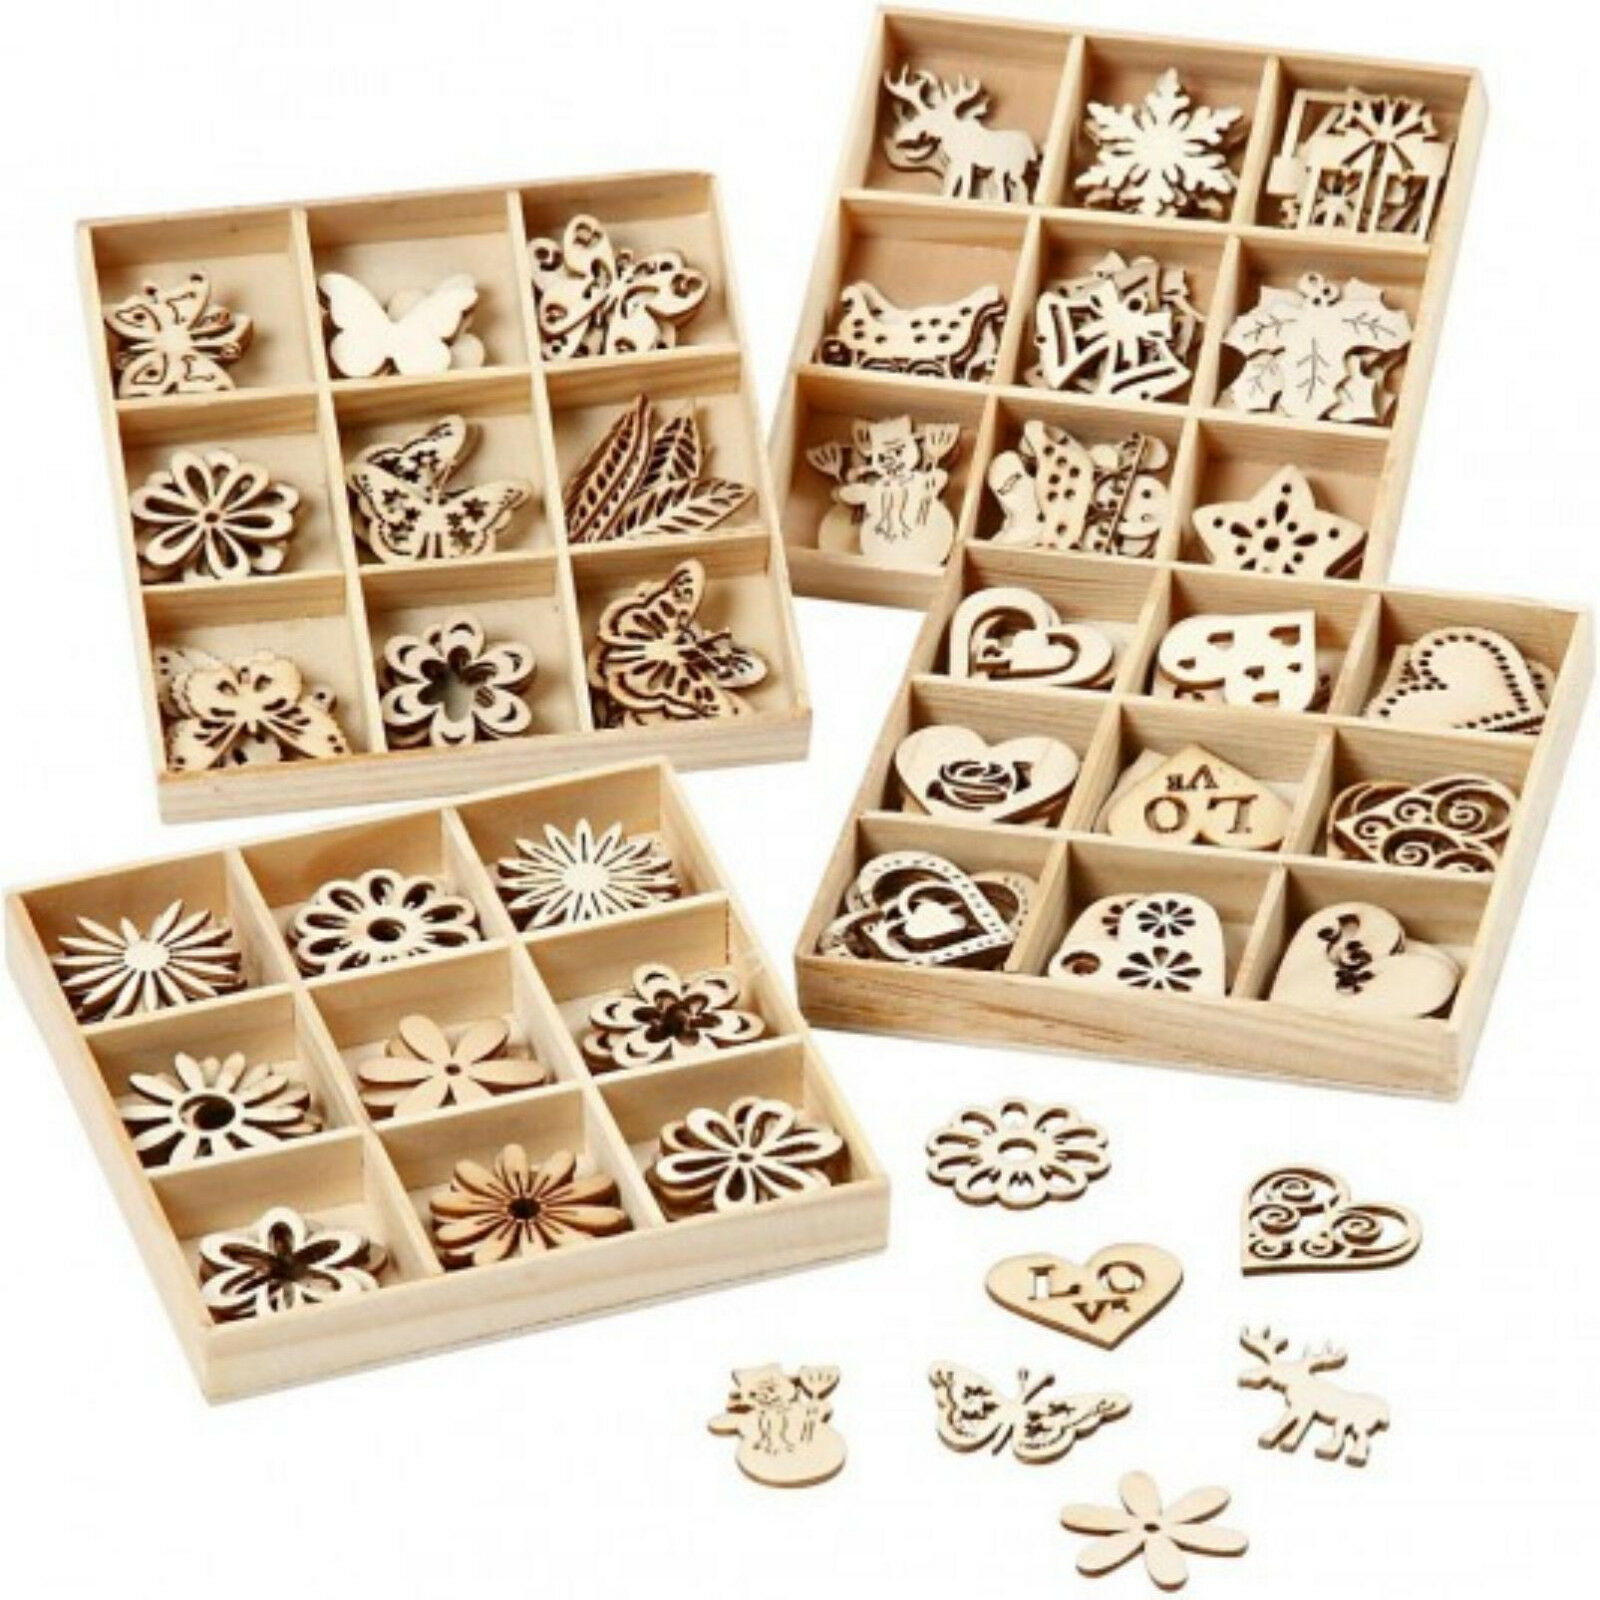 45 streuteile in box holz deko figuren streudeko scrapbooking weihnachten blumen eur 3 90. Black Bedroom Furniture Sets. Home Design Ideas